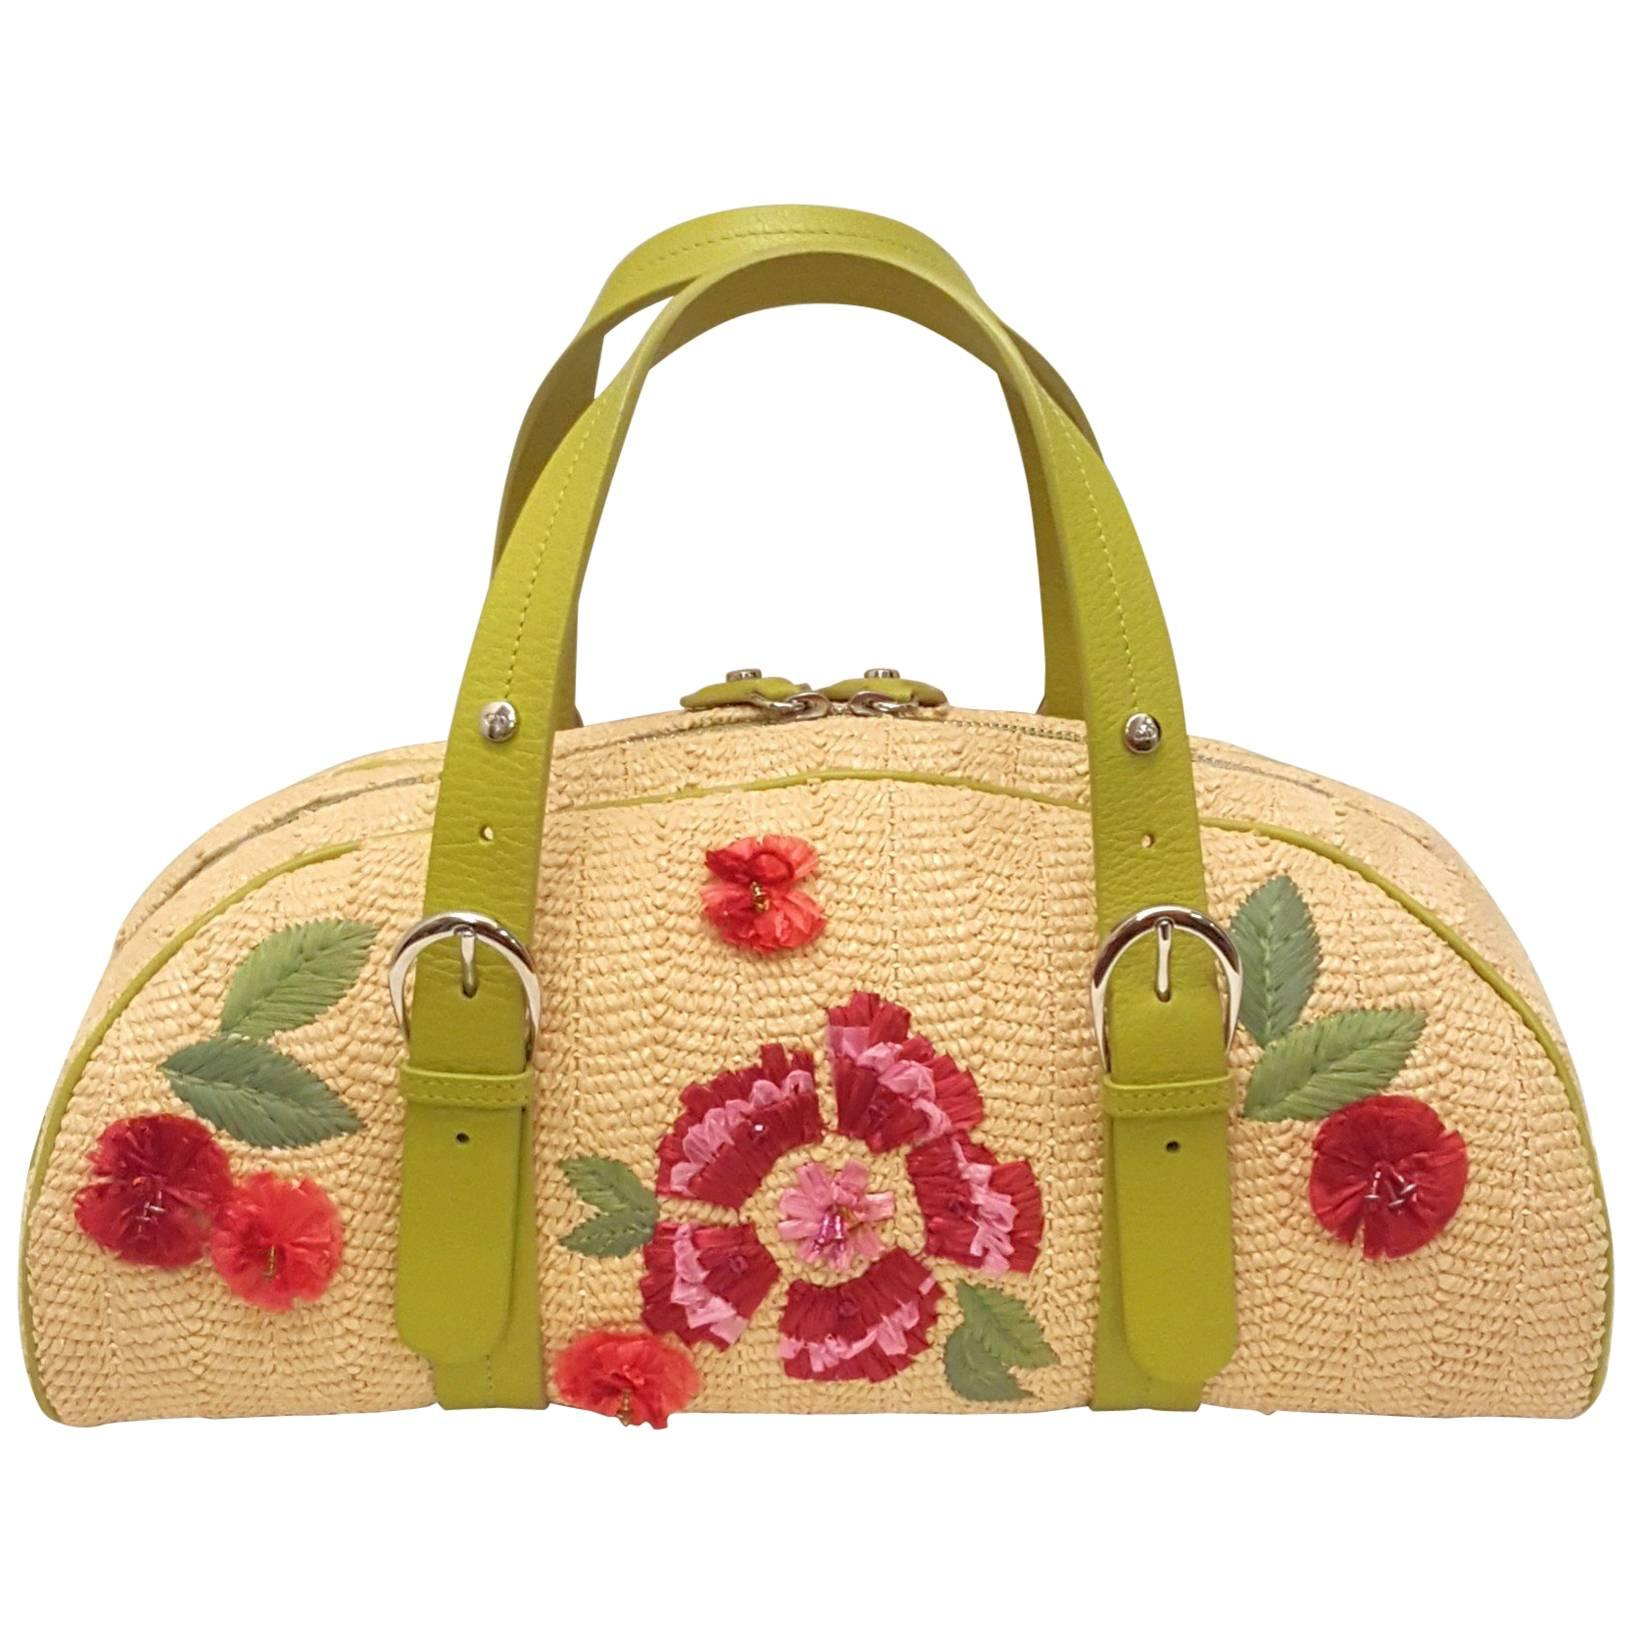 Flowery Christian Dior Straw Bag with Raffia Flowers Top Handle Bag For Sale